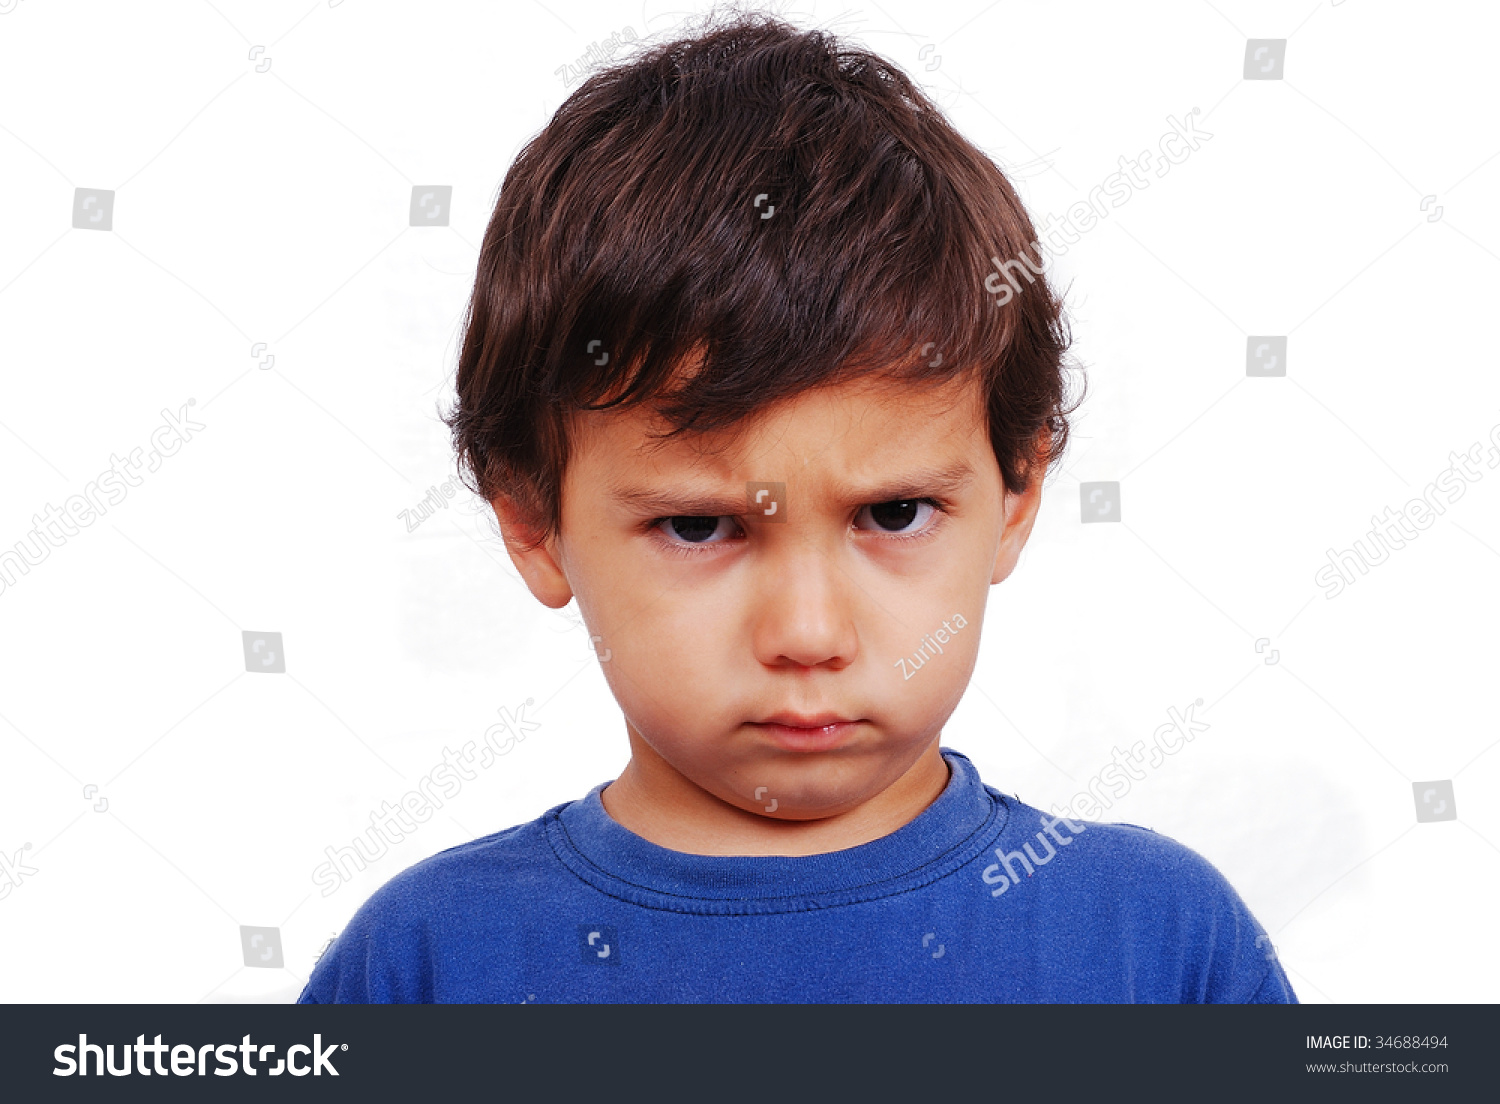 cute kid angry expression on his stock photo (100% legal protection